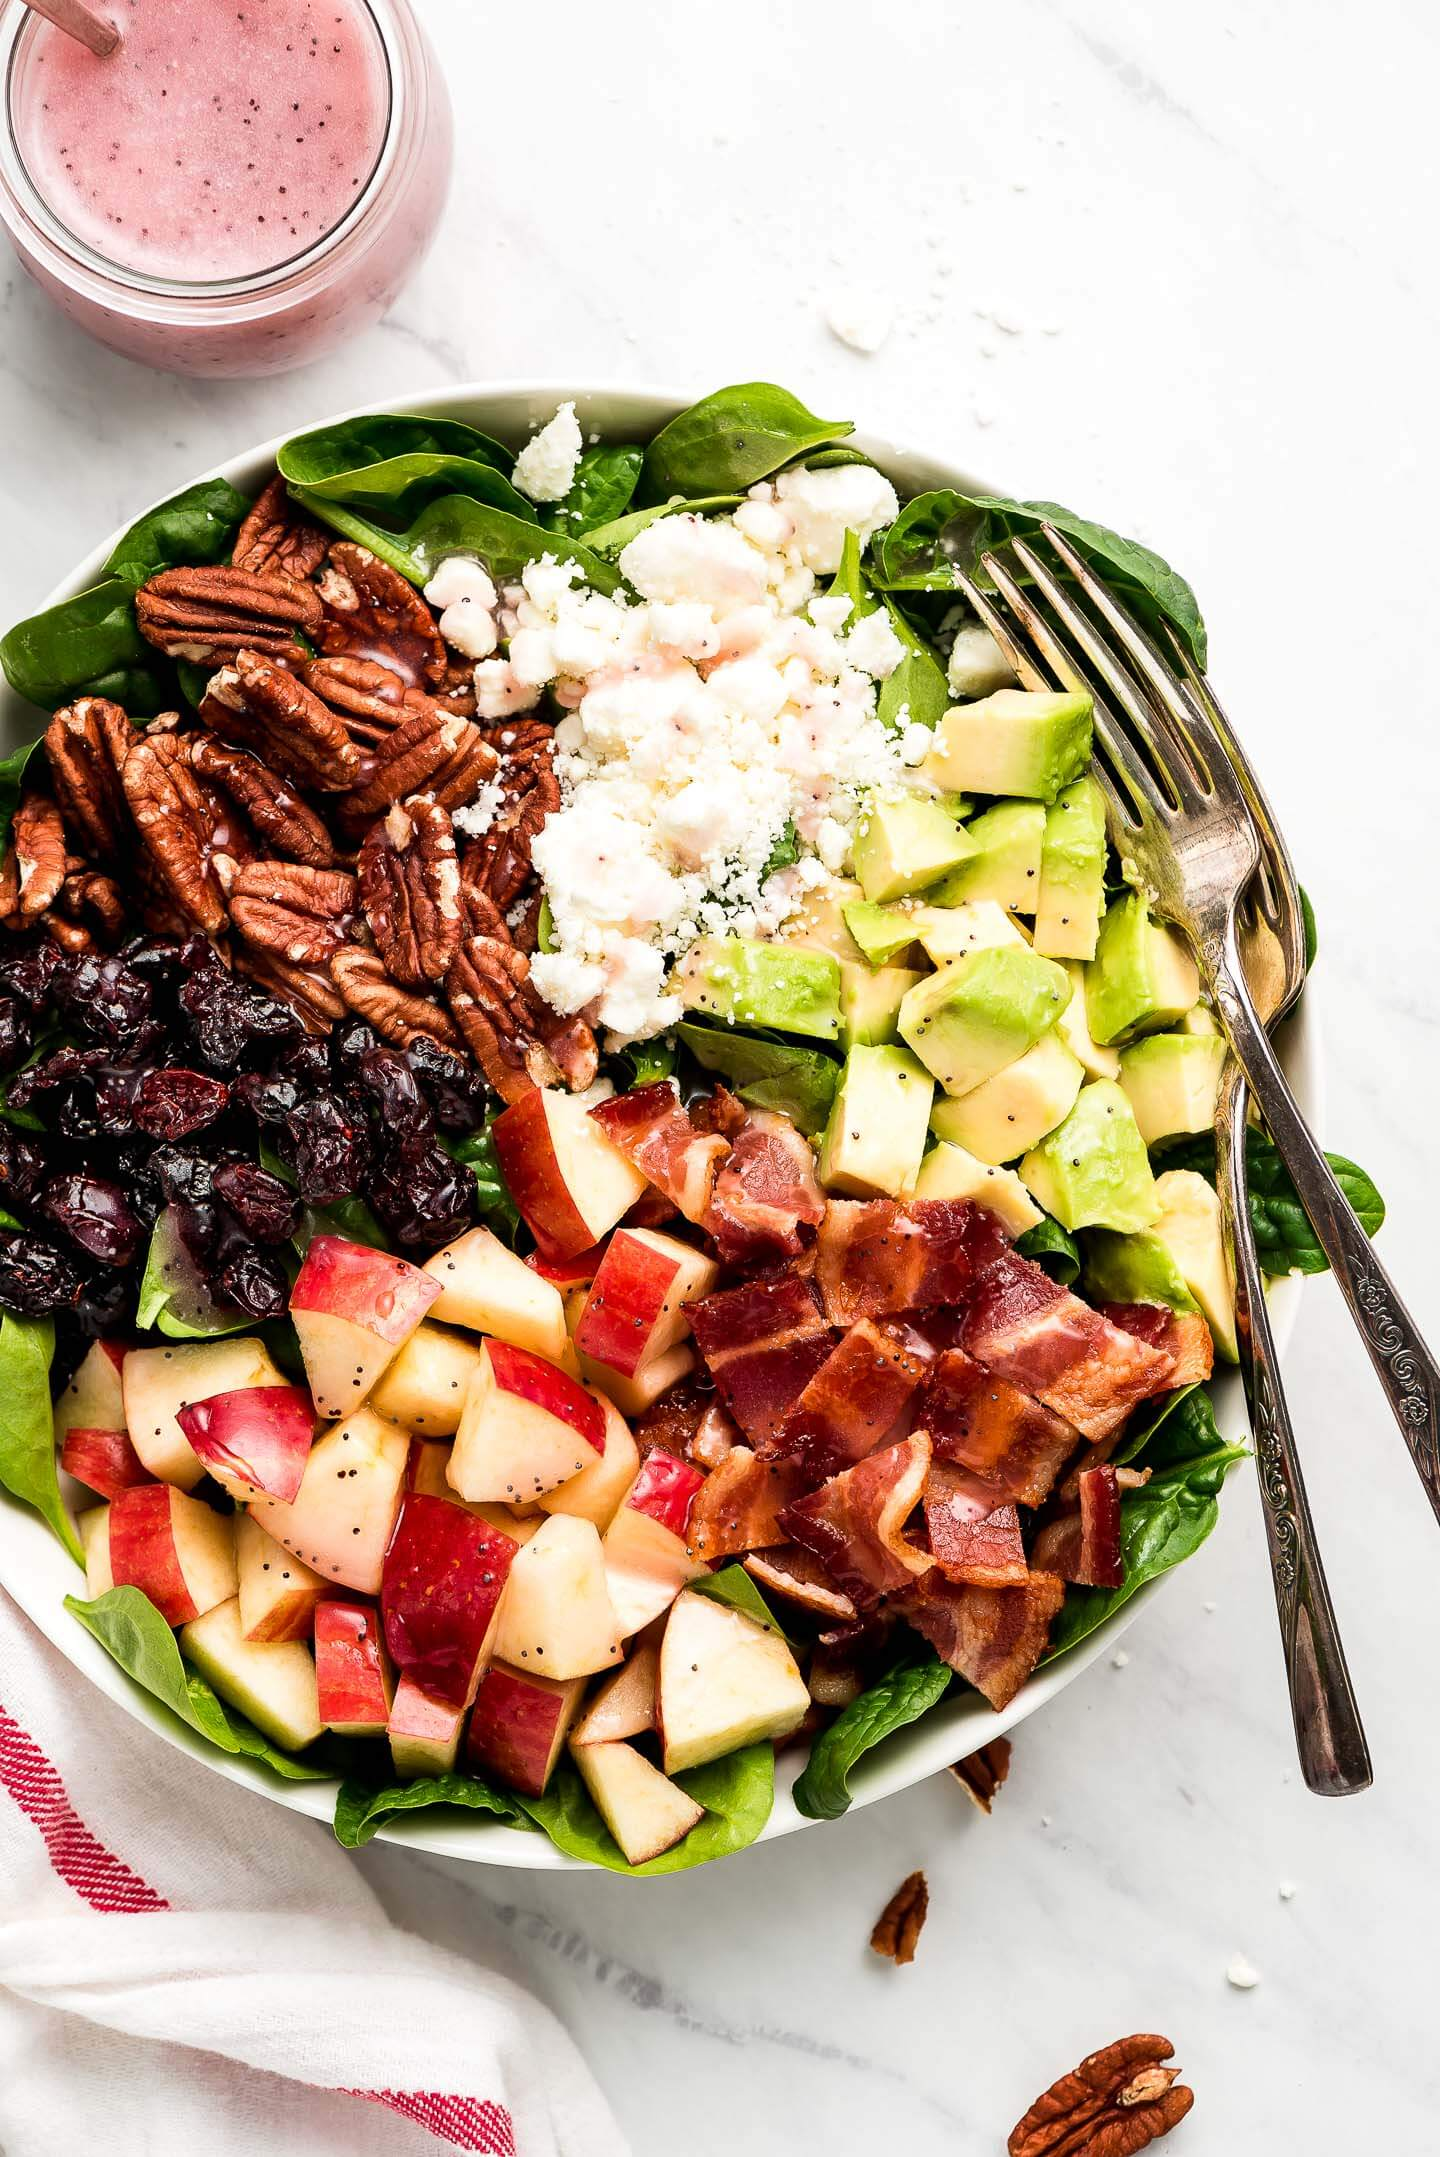 A bowl of baby spinach topped with pecans, feta cheese, diced avocado, chopped bacon, diced apple, and dried cranberries.